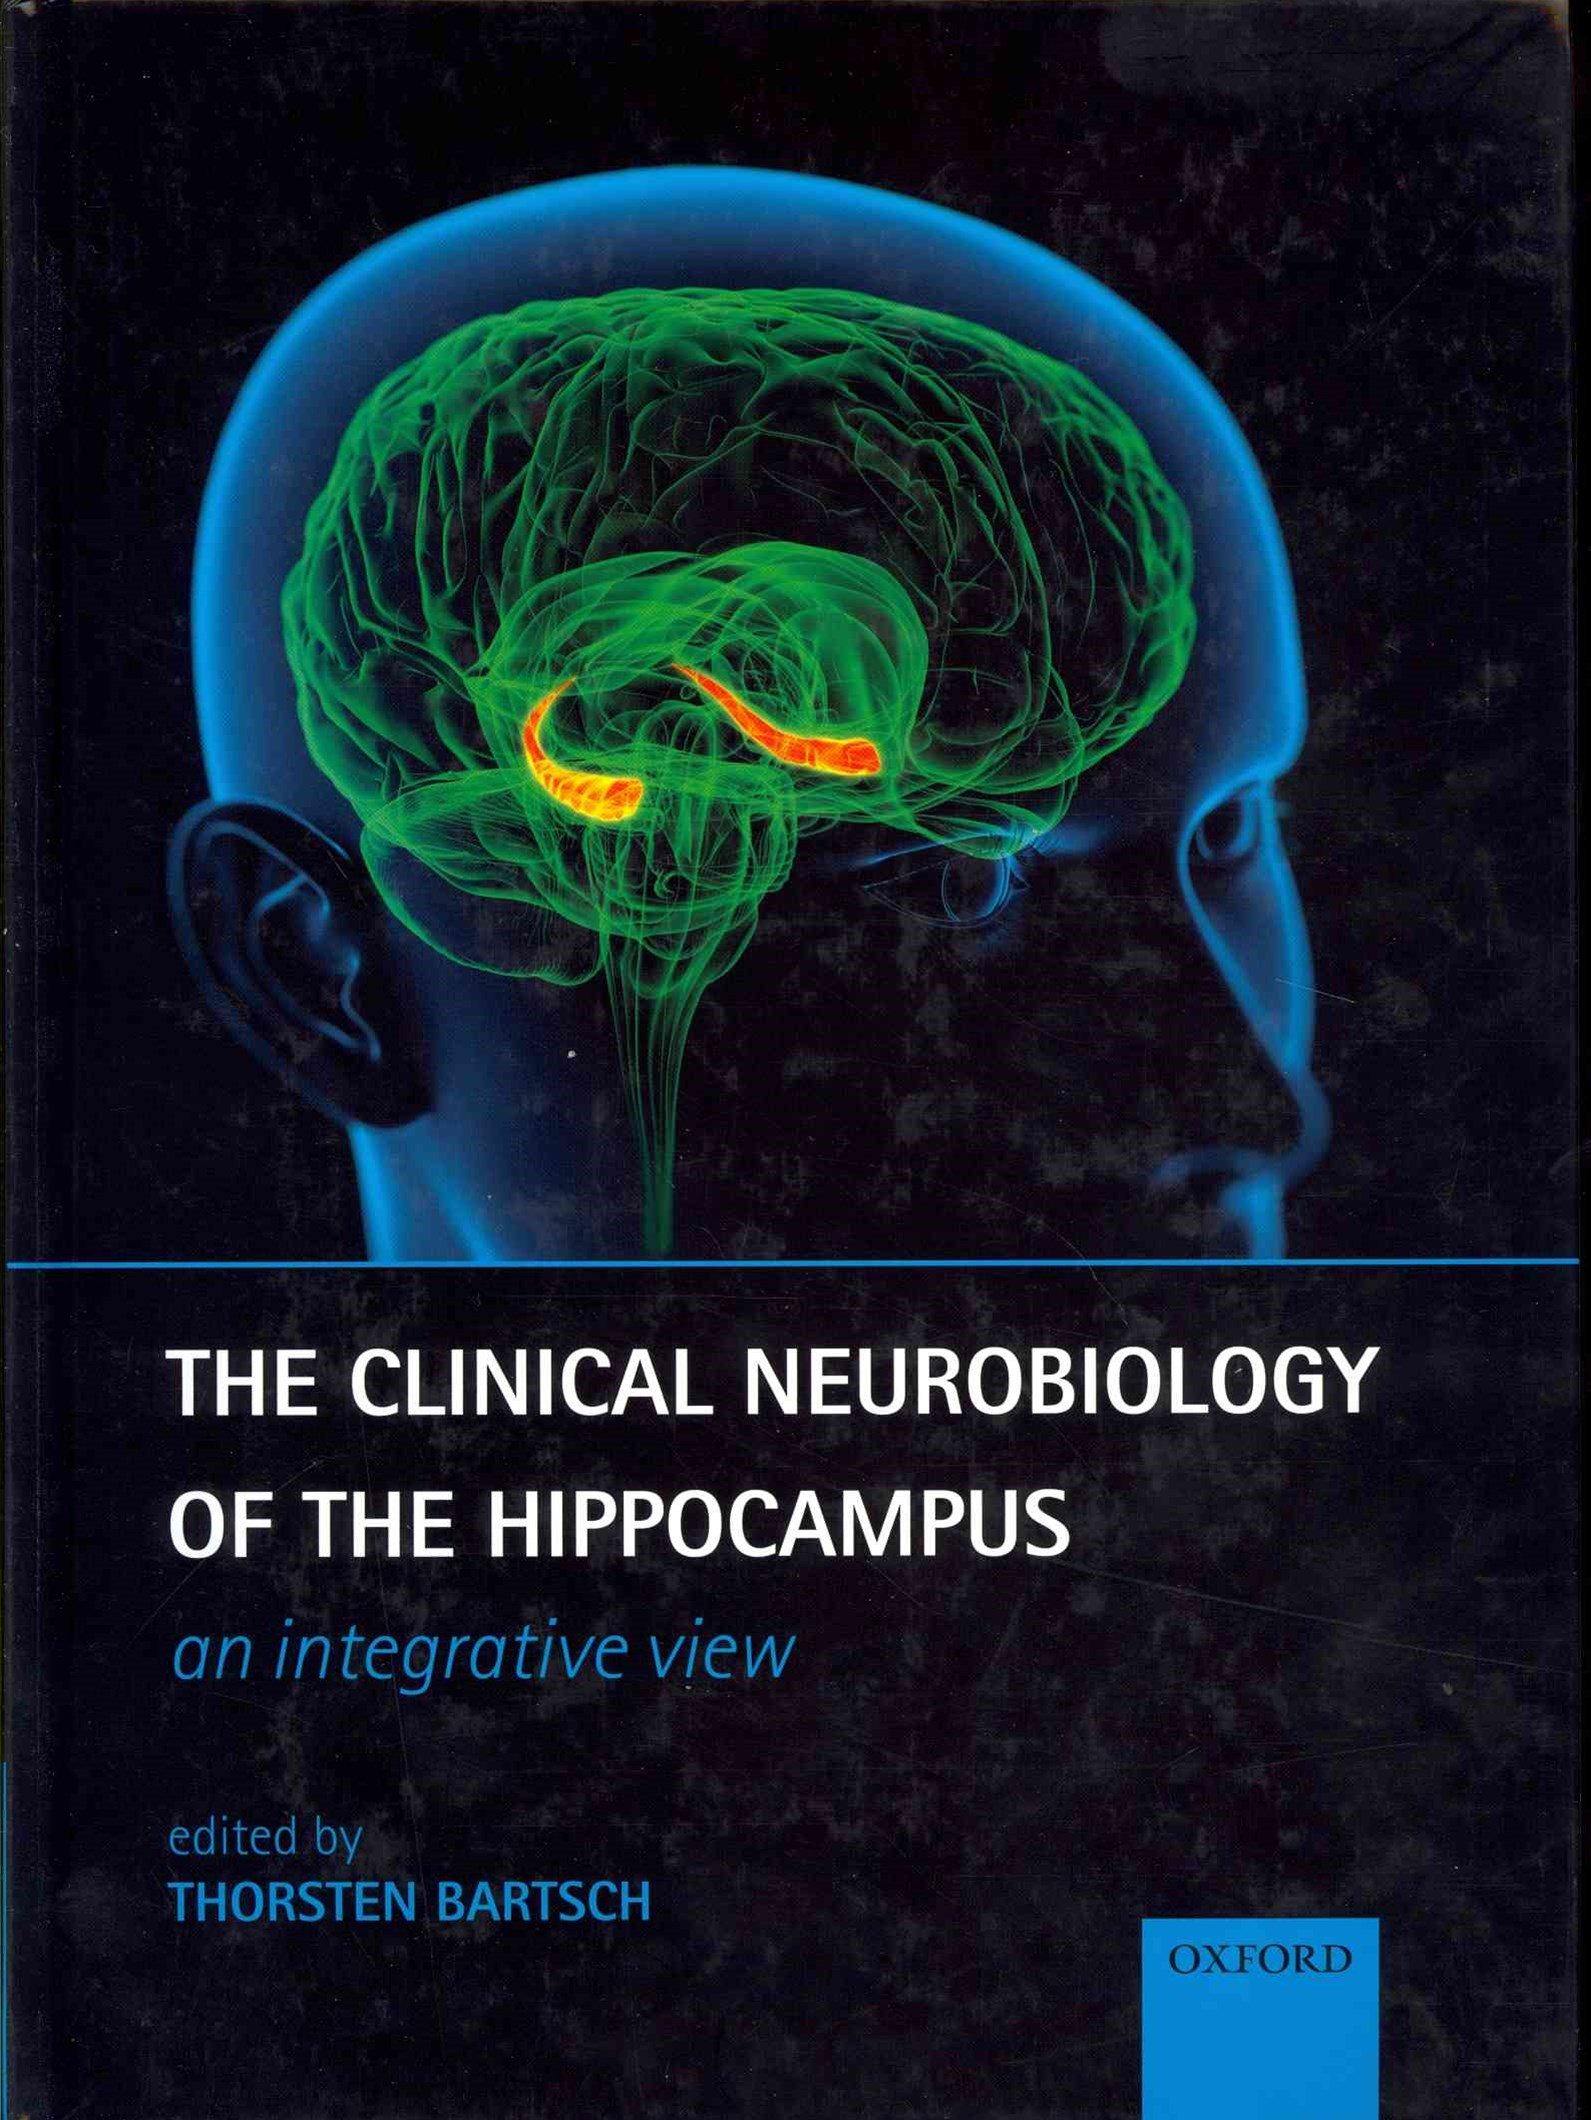 The Clinical Neurobiology of the Hippocampus